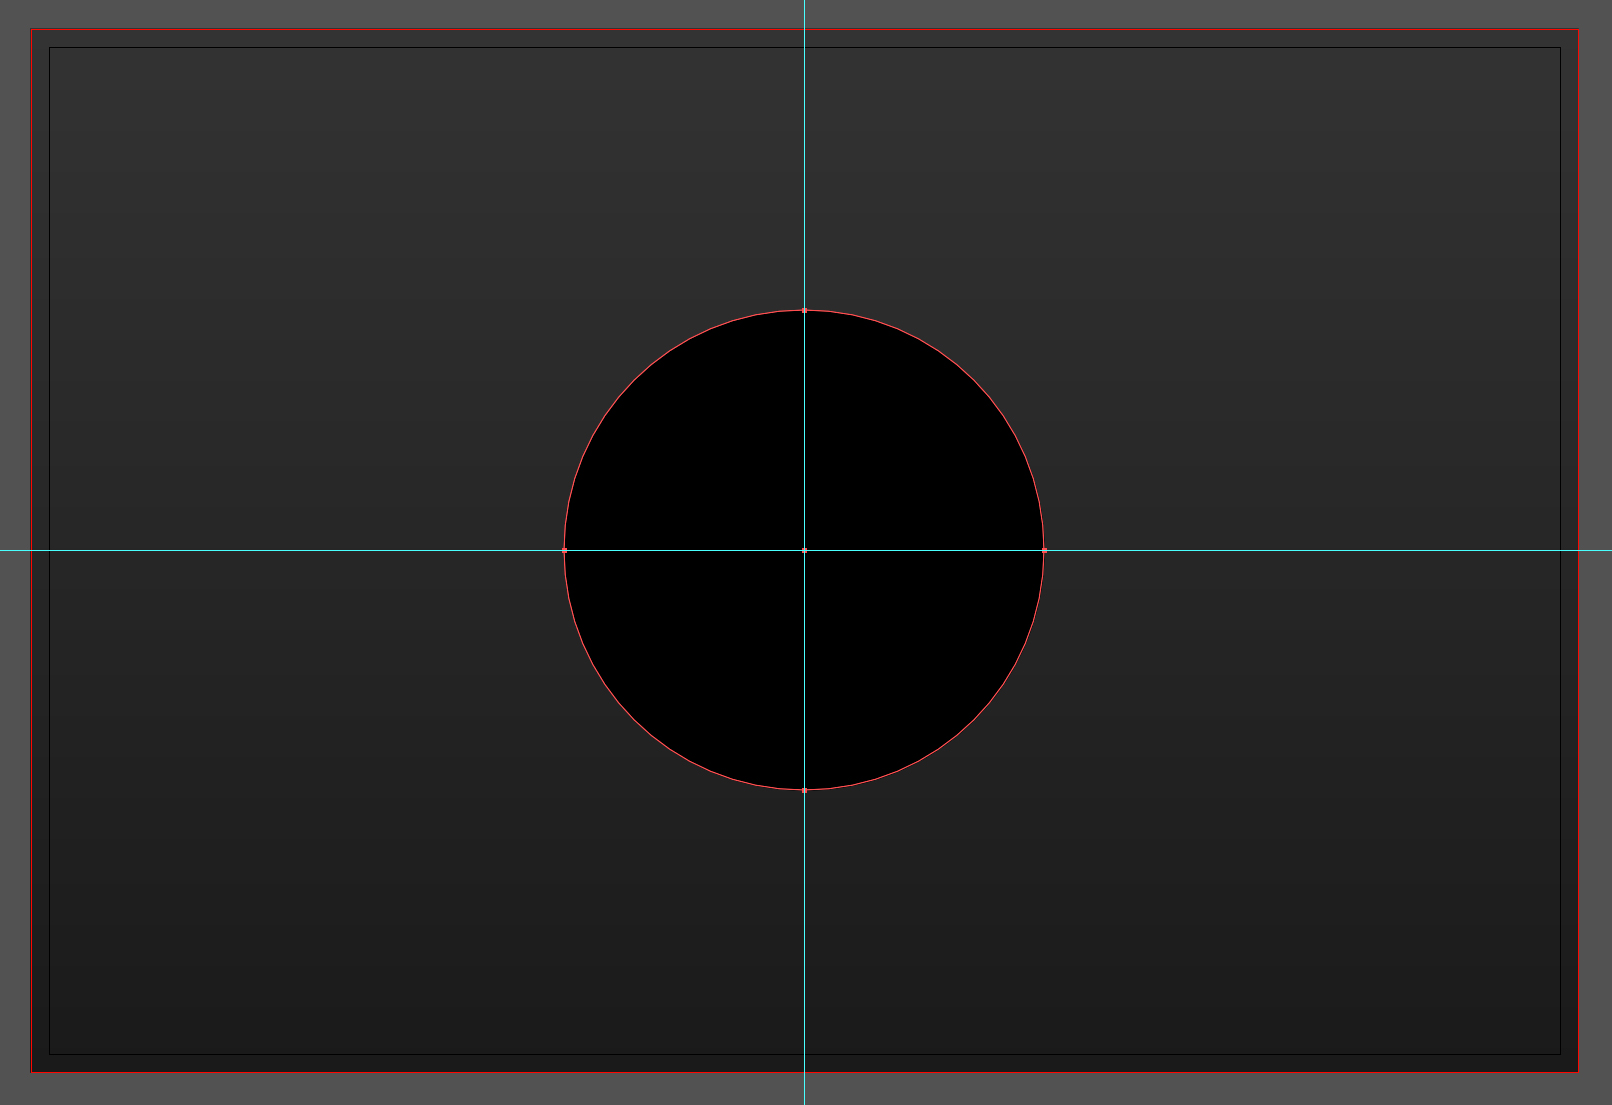 Start with an innocuous black circle